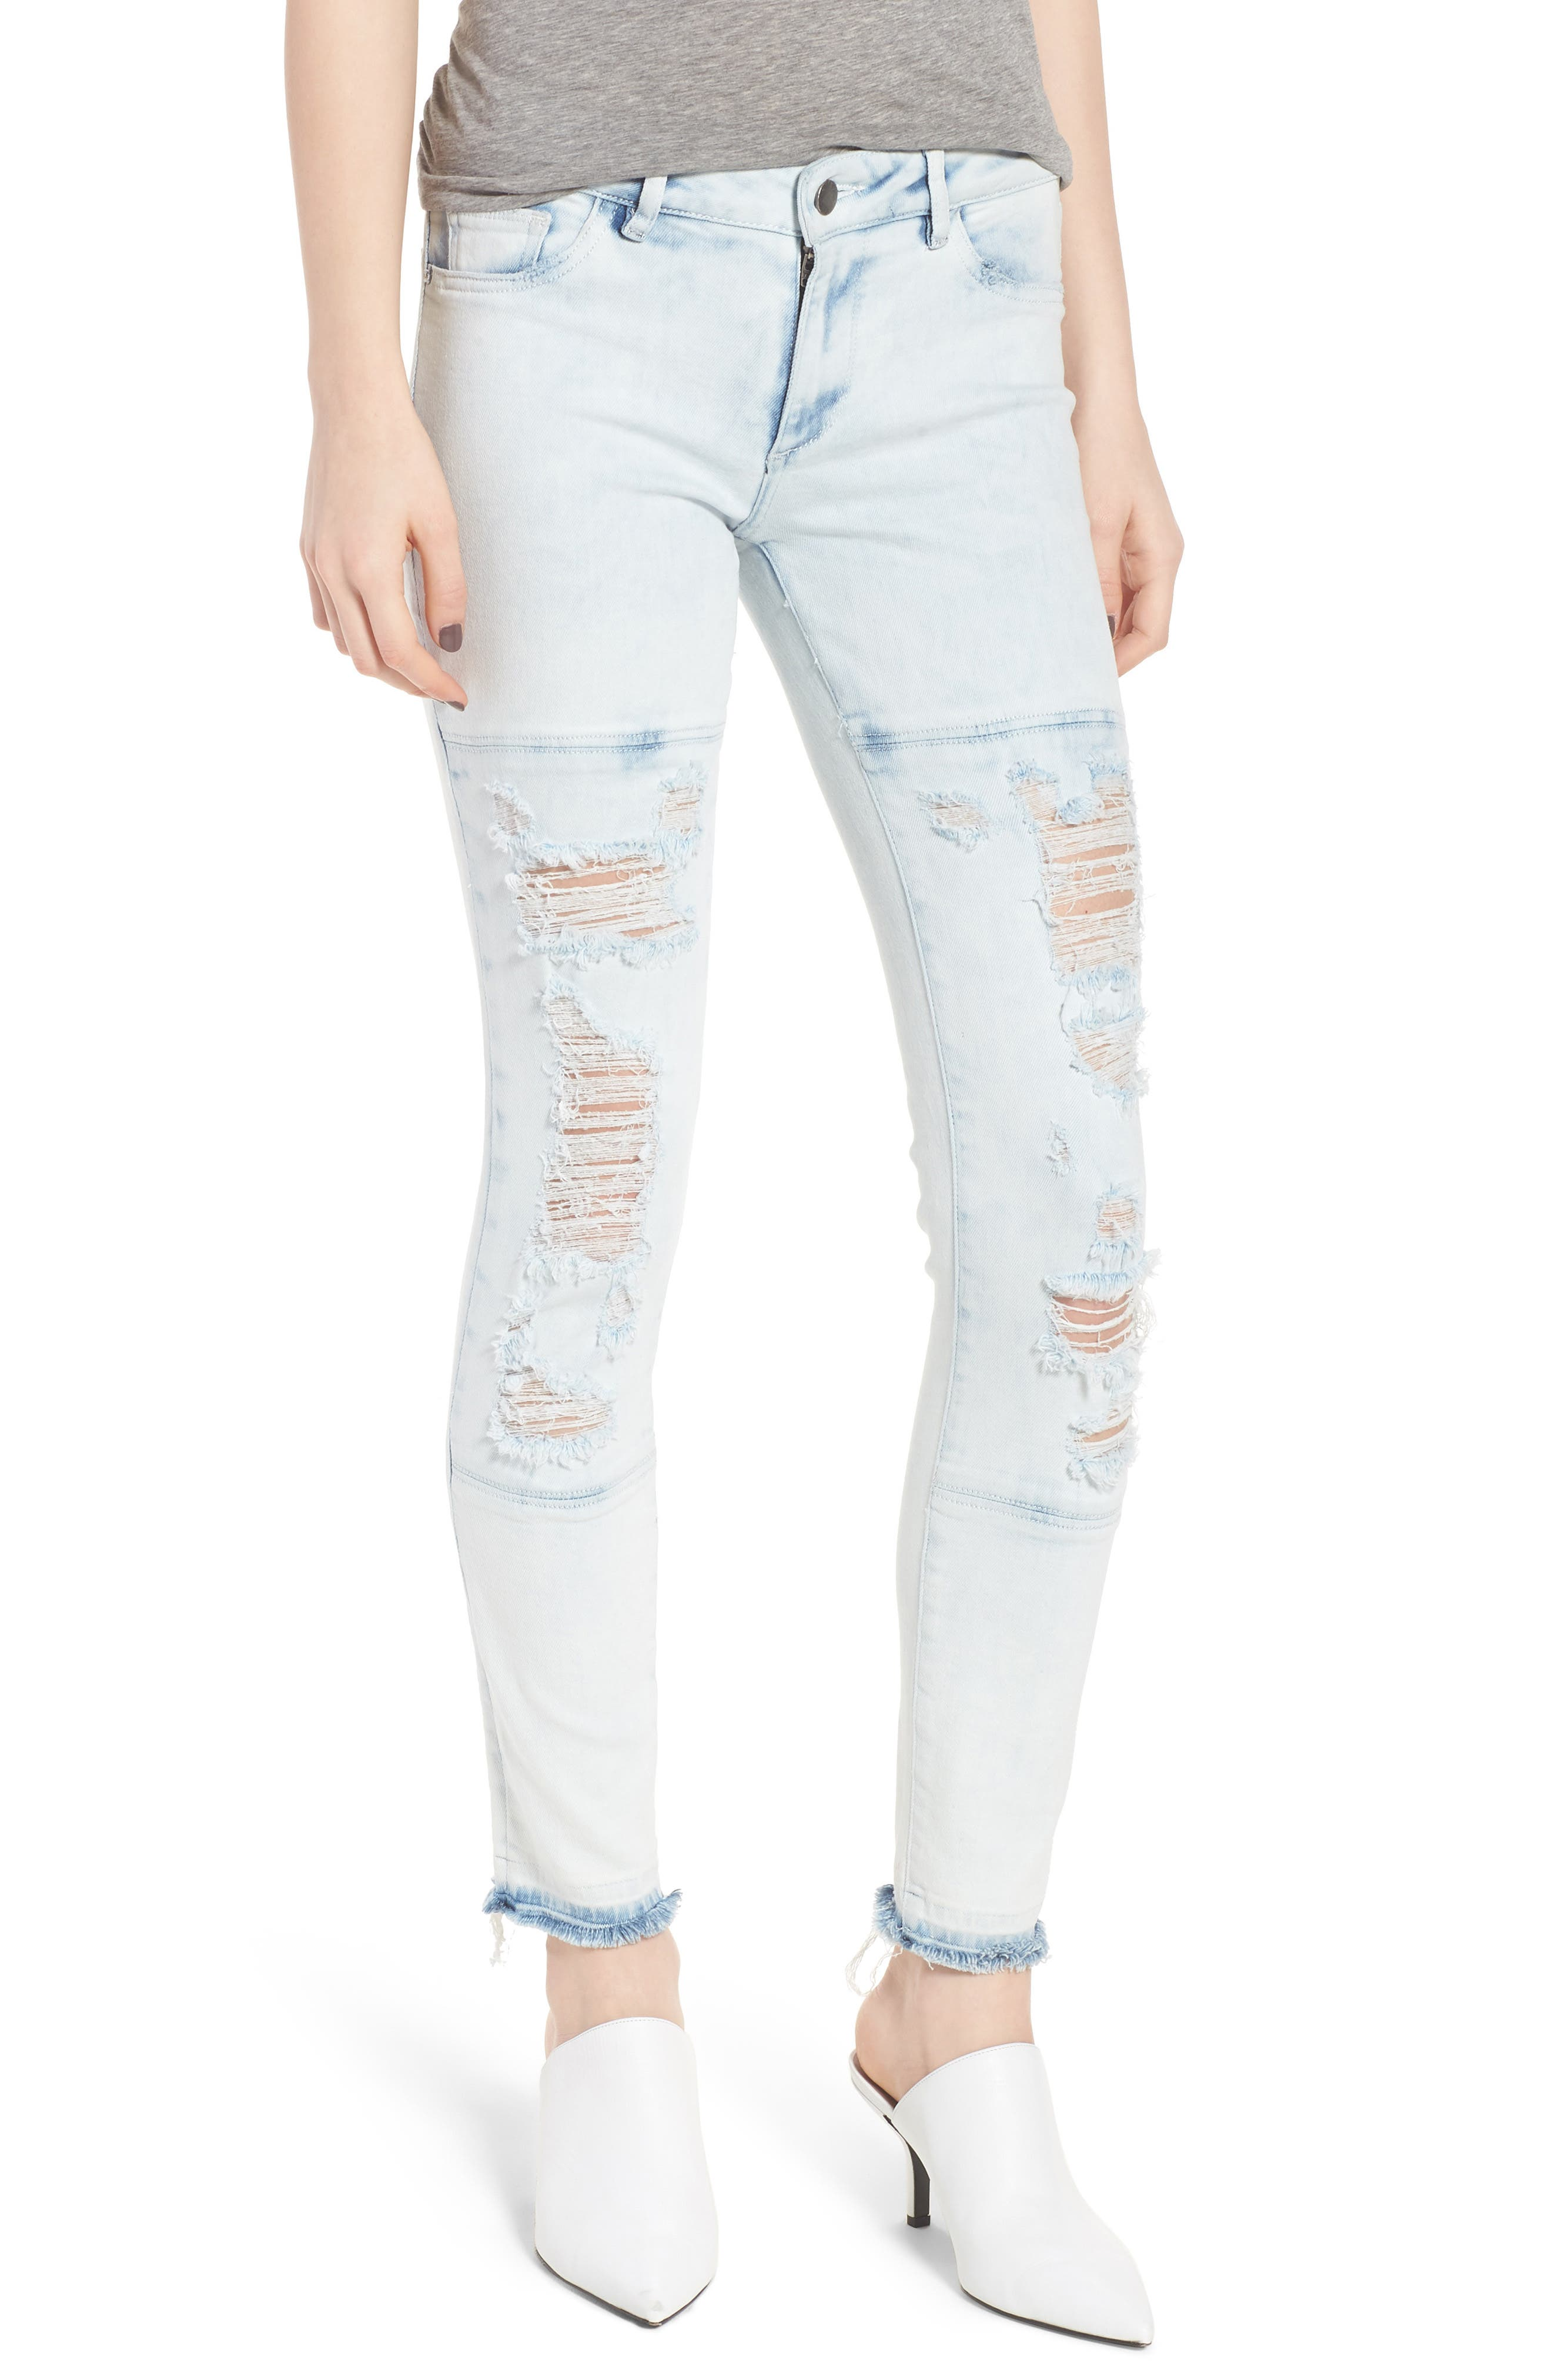 Emma Power Legging Ripped Skinny Jeans,                         Main,                         color, Sinclair